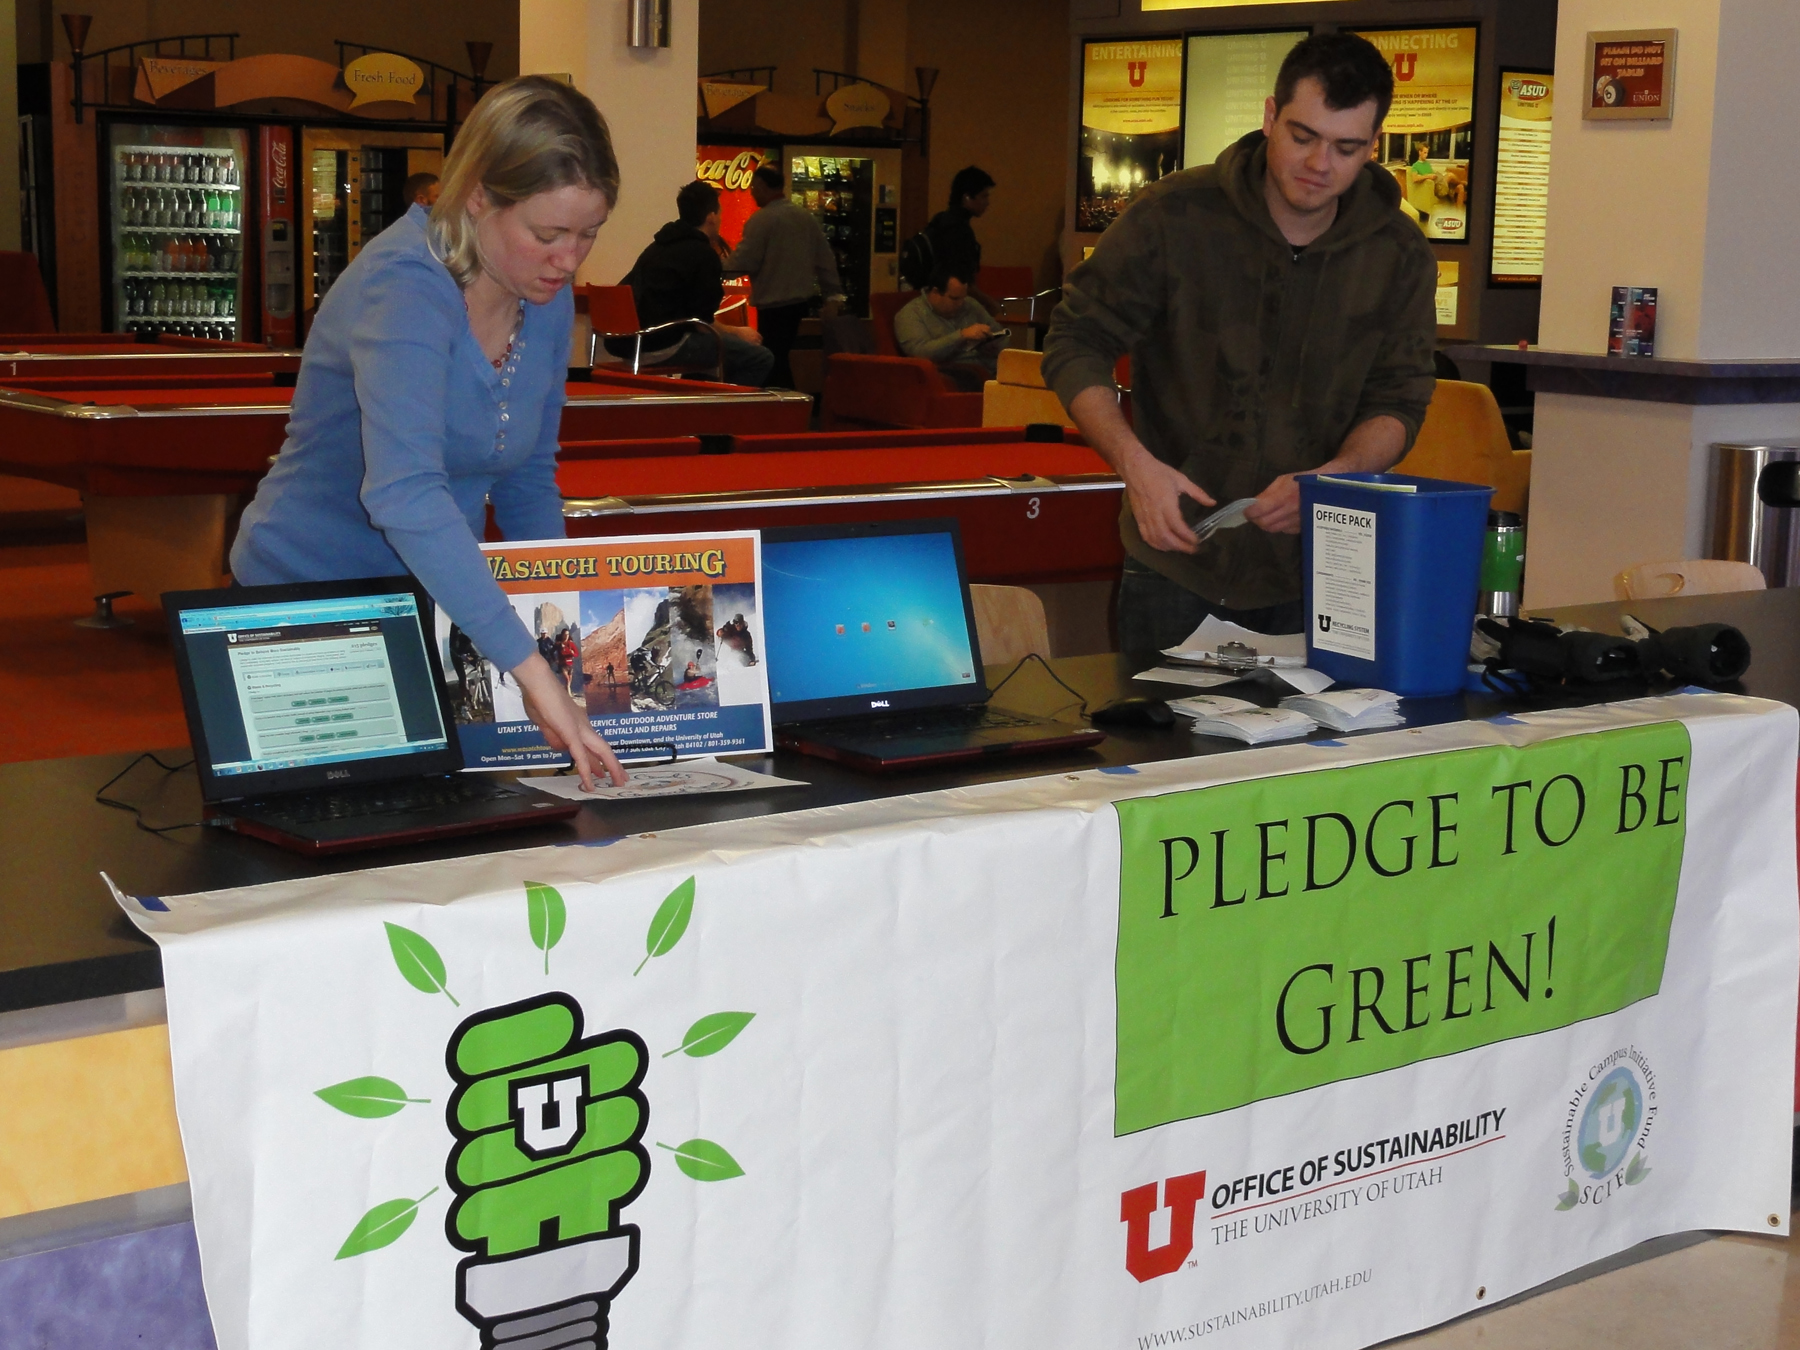 Volunteers at the table for the Office of Sustainability